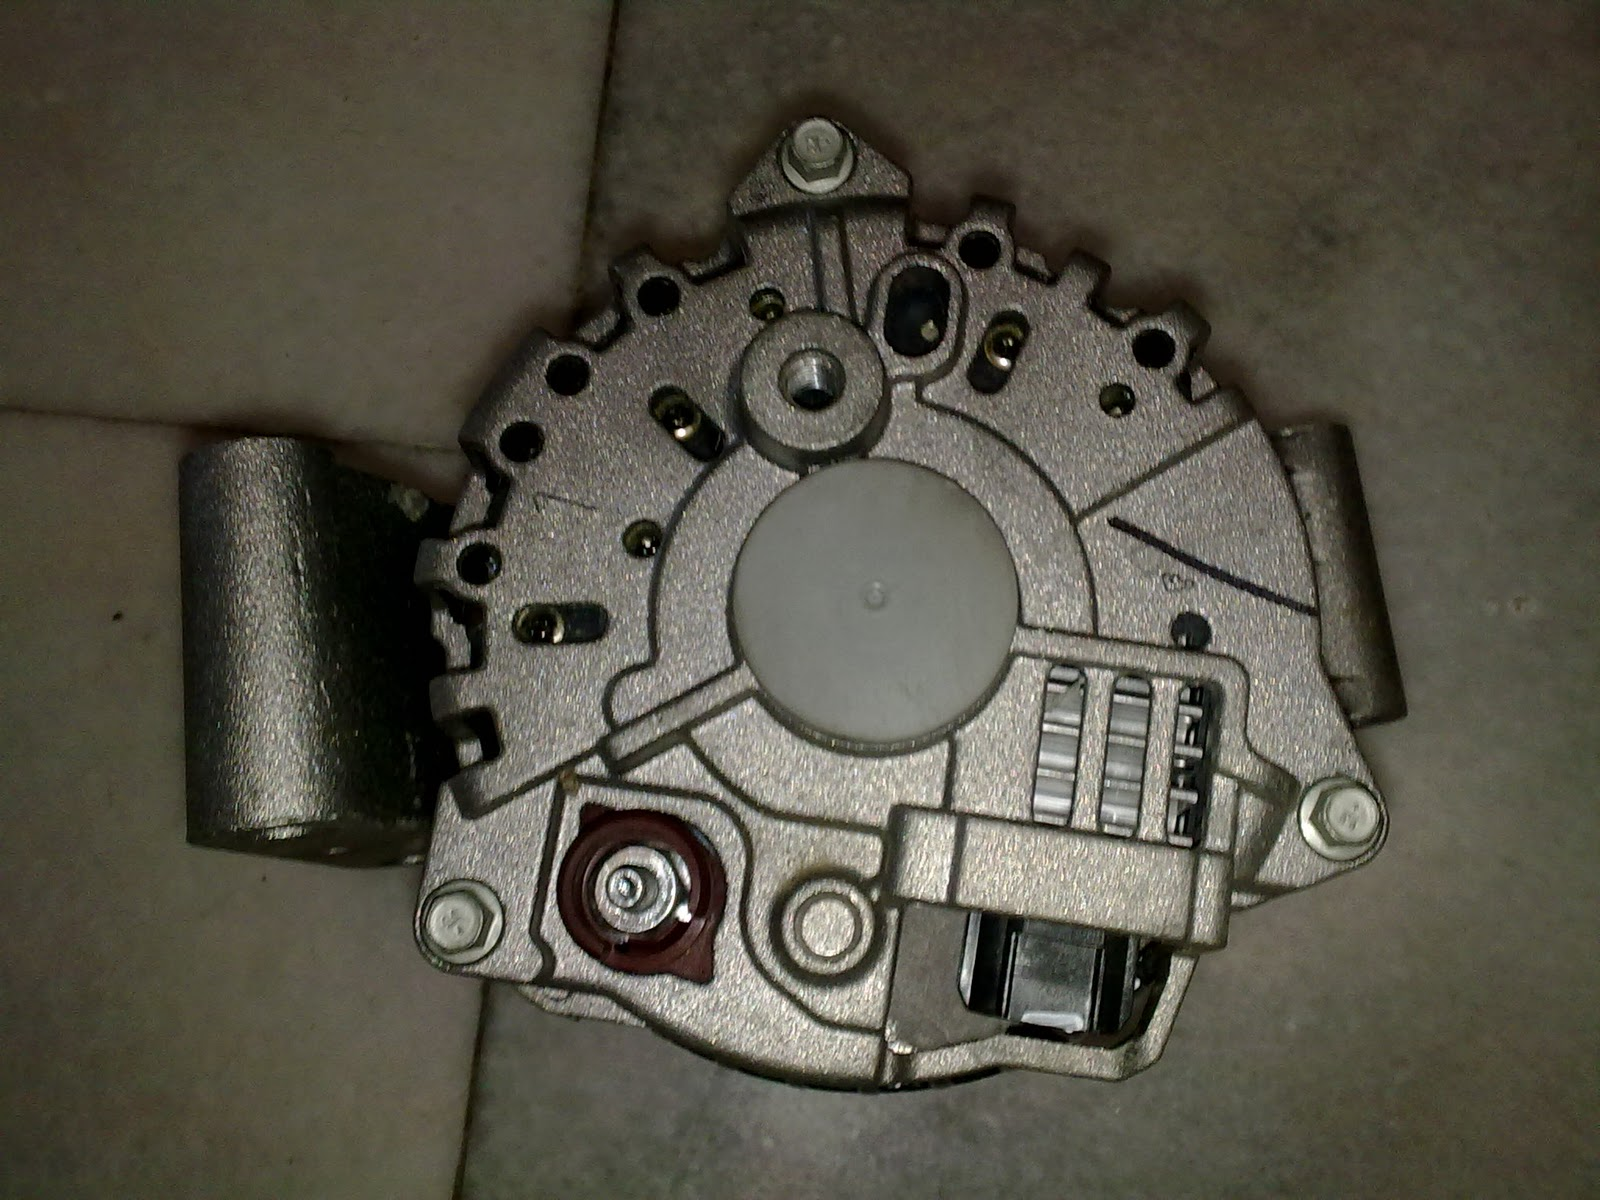 Ford Spare Parts Cheapest In Town Alternator Focus Escape Lynx Pls Call 012 6083109 Derek For Dealing